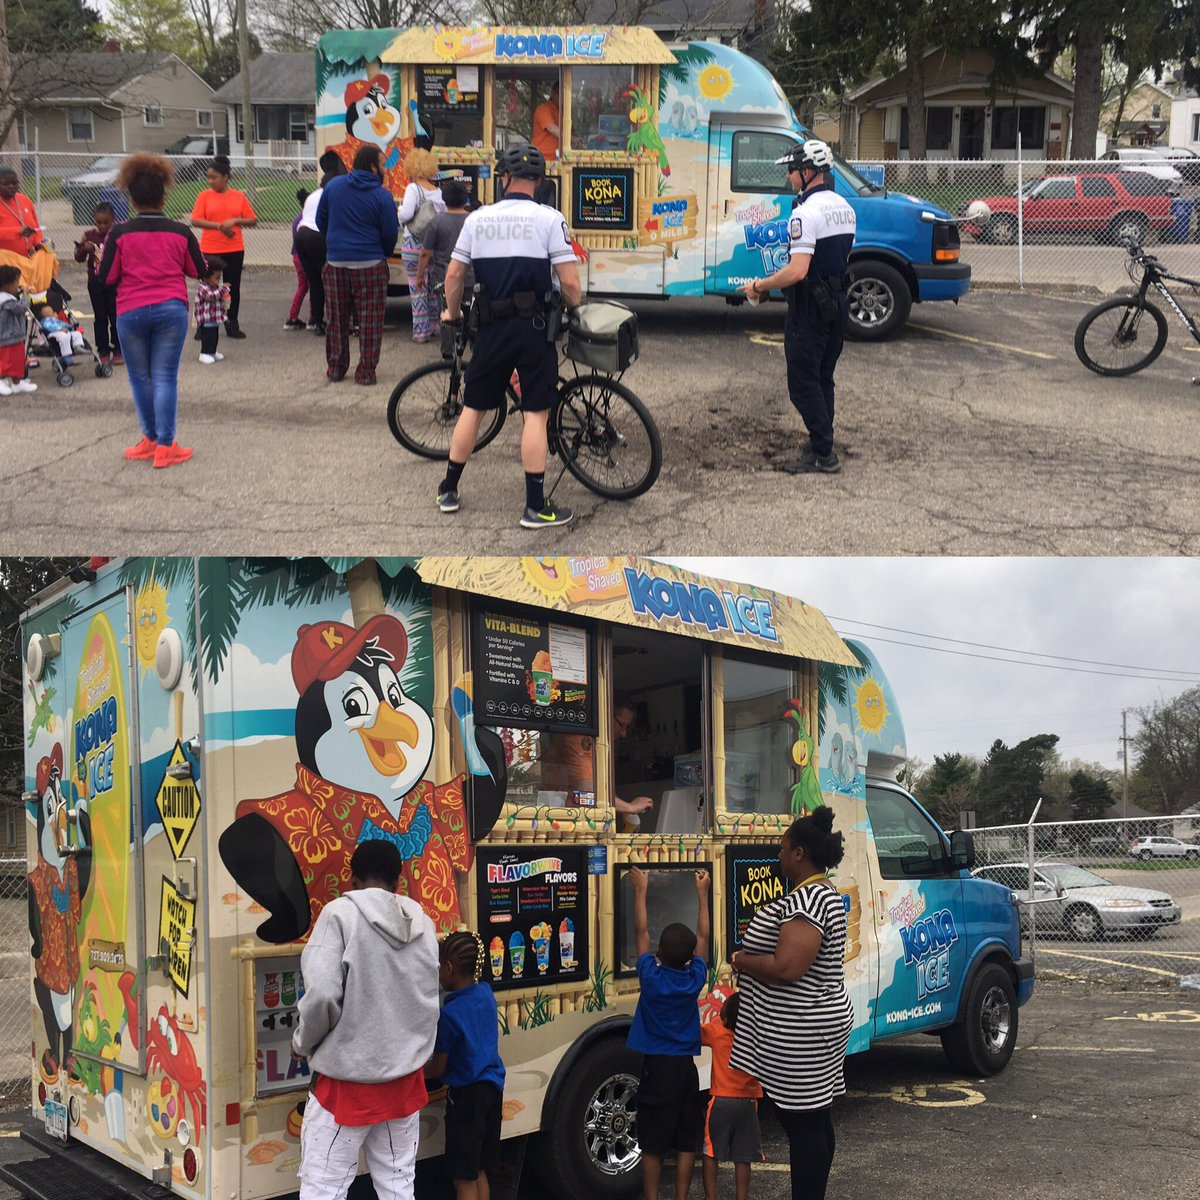 Columbus Ohio Police On Twitter Ice Ice Baby Shout Out To Konaice Columbus Community Liaison Officer Clo Alesia Zacher For Helping Linden Safe Streets To Provide Free Snow Cones At A